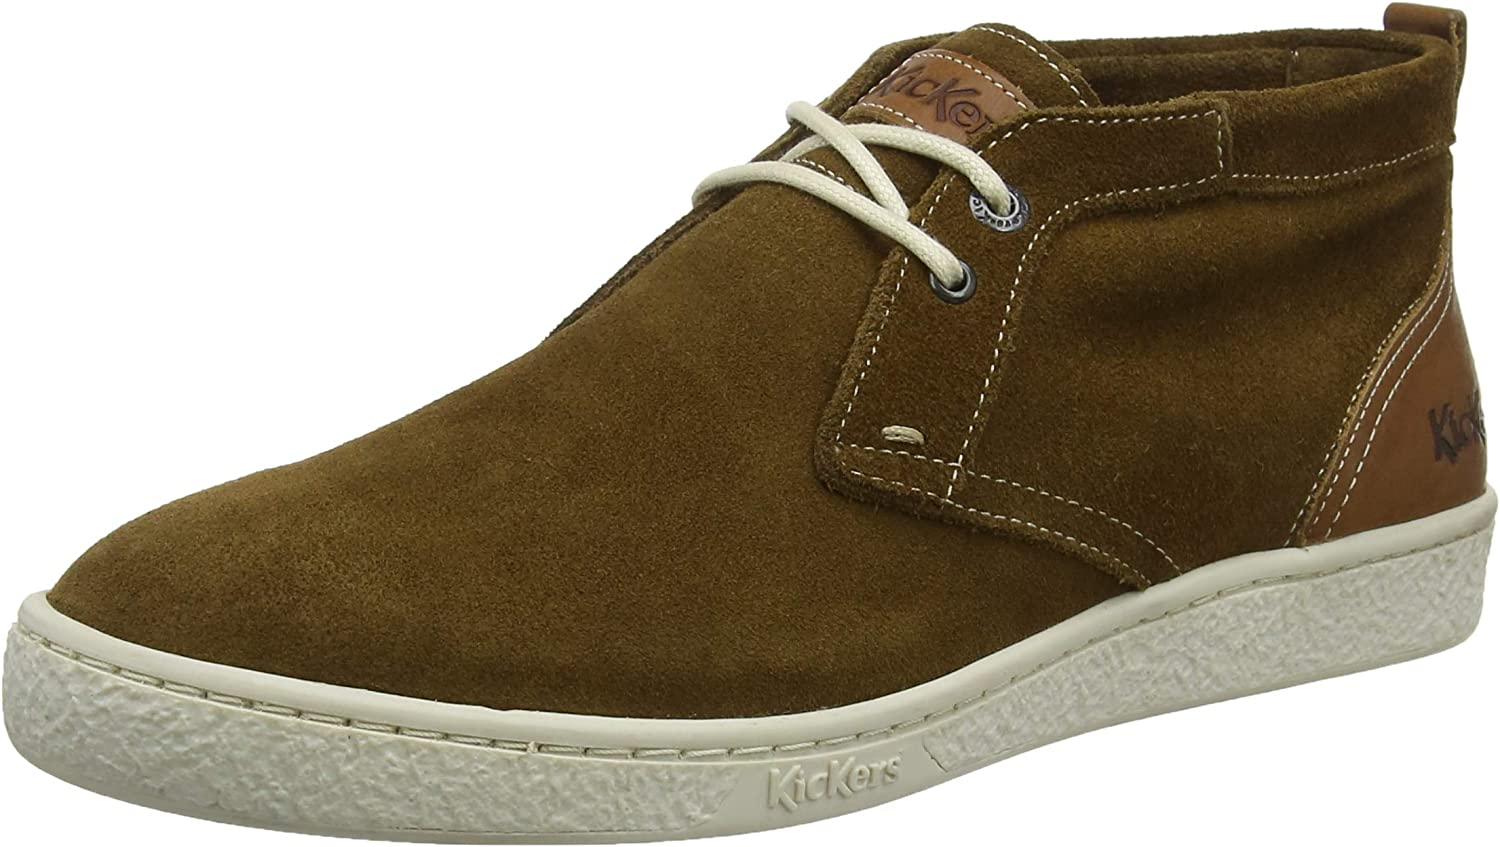 Kickers Men's Sanper Hi-Top Trainers